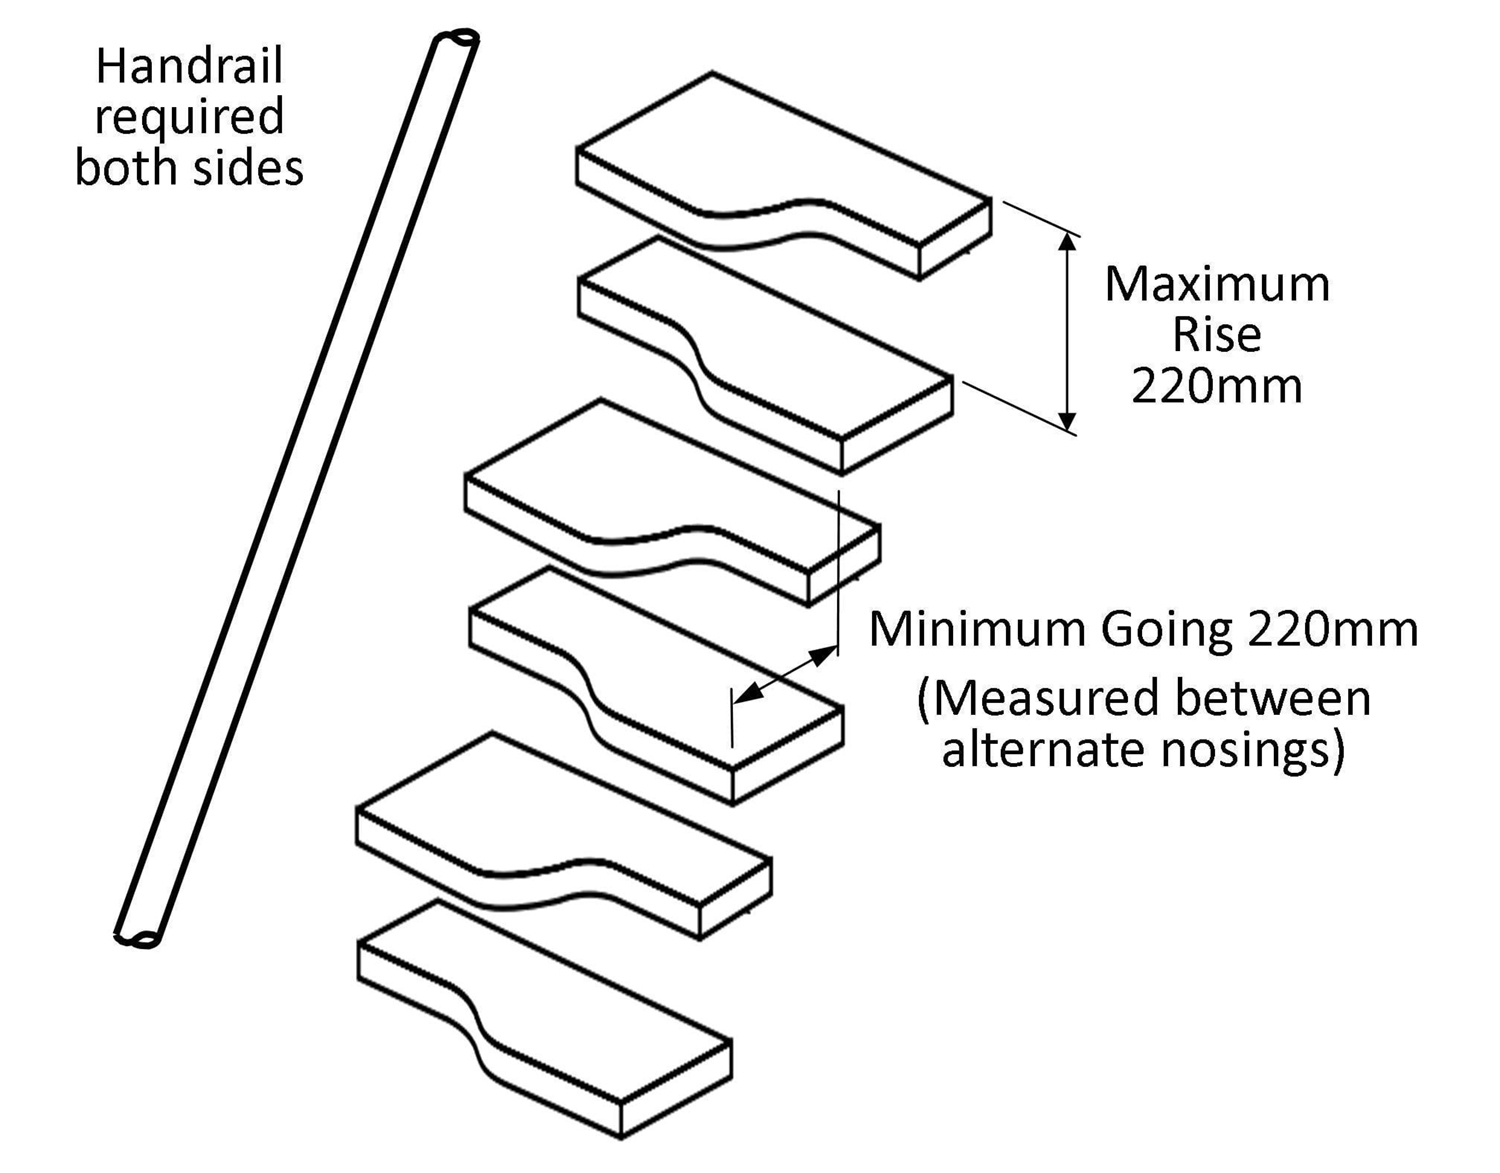 paddle stairs requirements, pear stairs